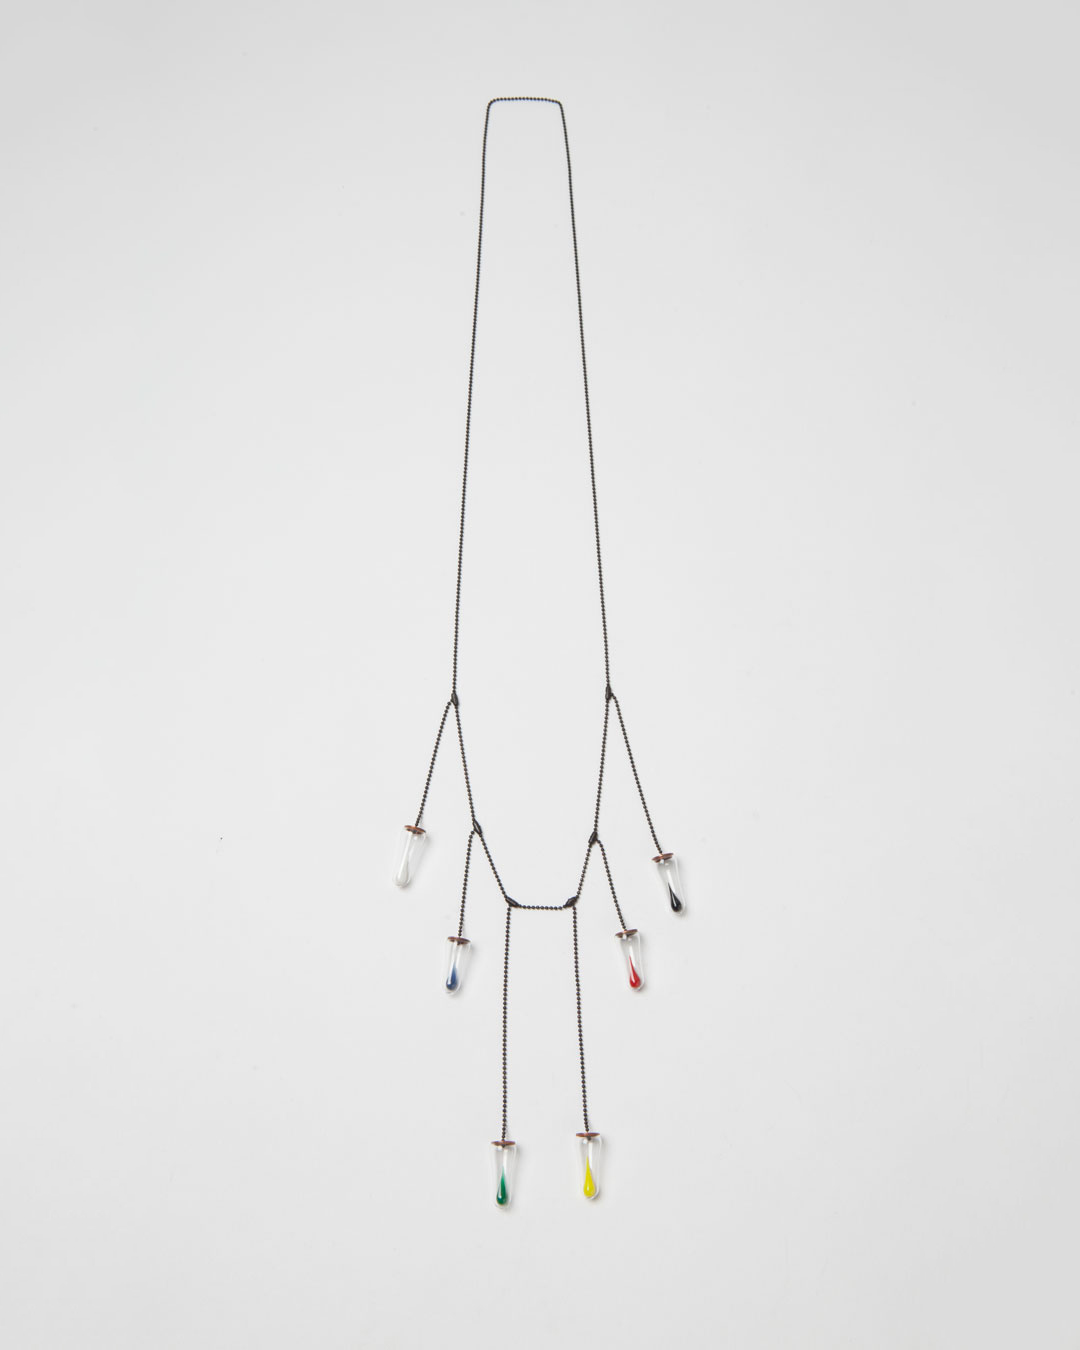 Annamaria Leiste, Colours Cry, 2014, necklace; glass, coloured glass, copper, silver, 400 x 100 x 10 mm, €970